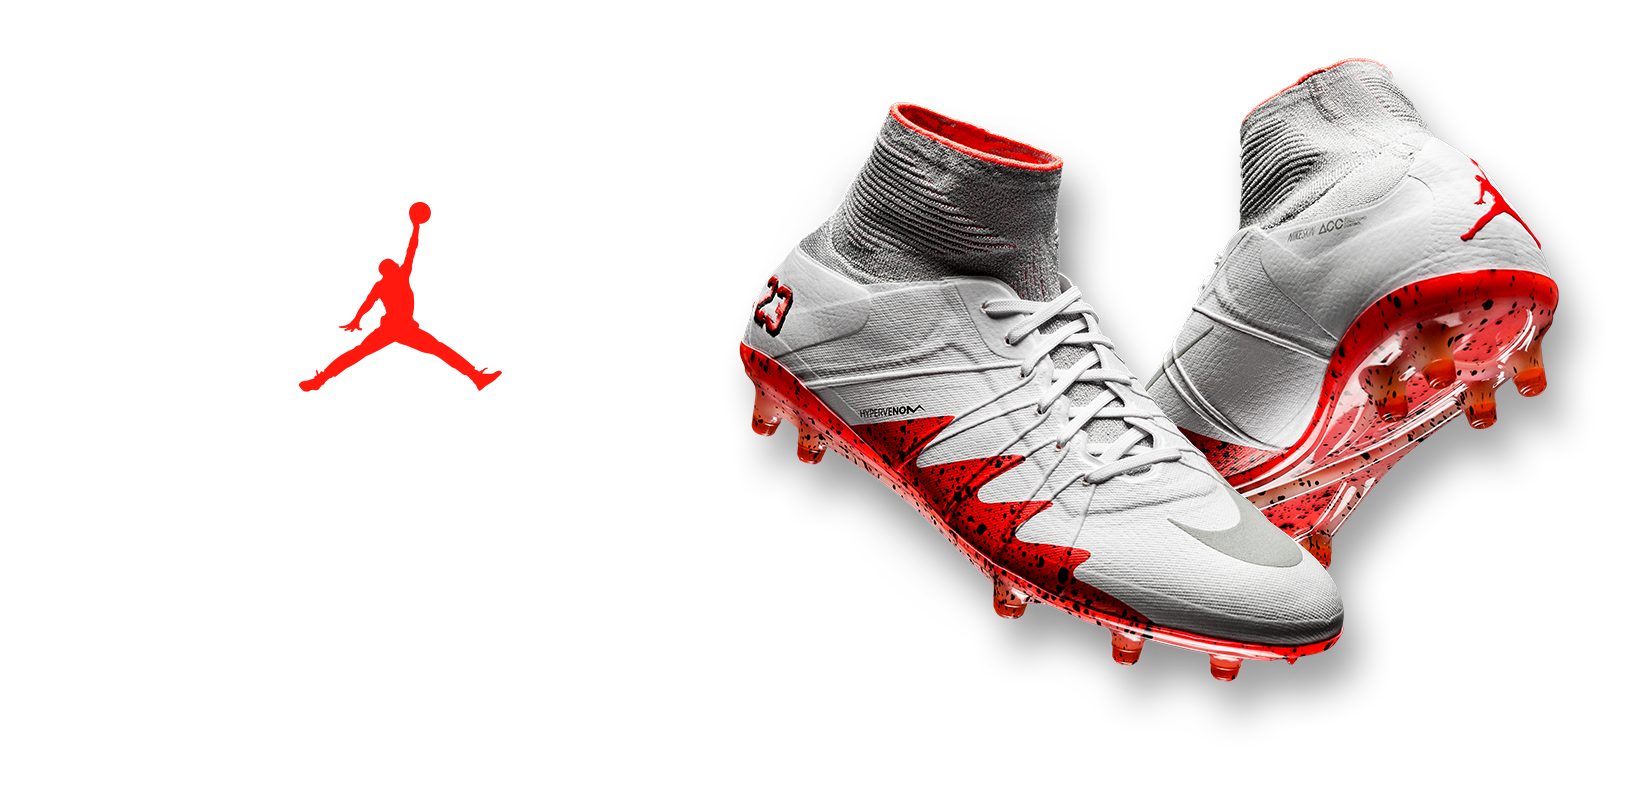 quality design 91426 f98f7 Buy your NEYMAR X JORDAN Hypervenom on Unisportstore.com now